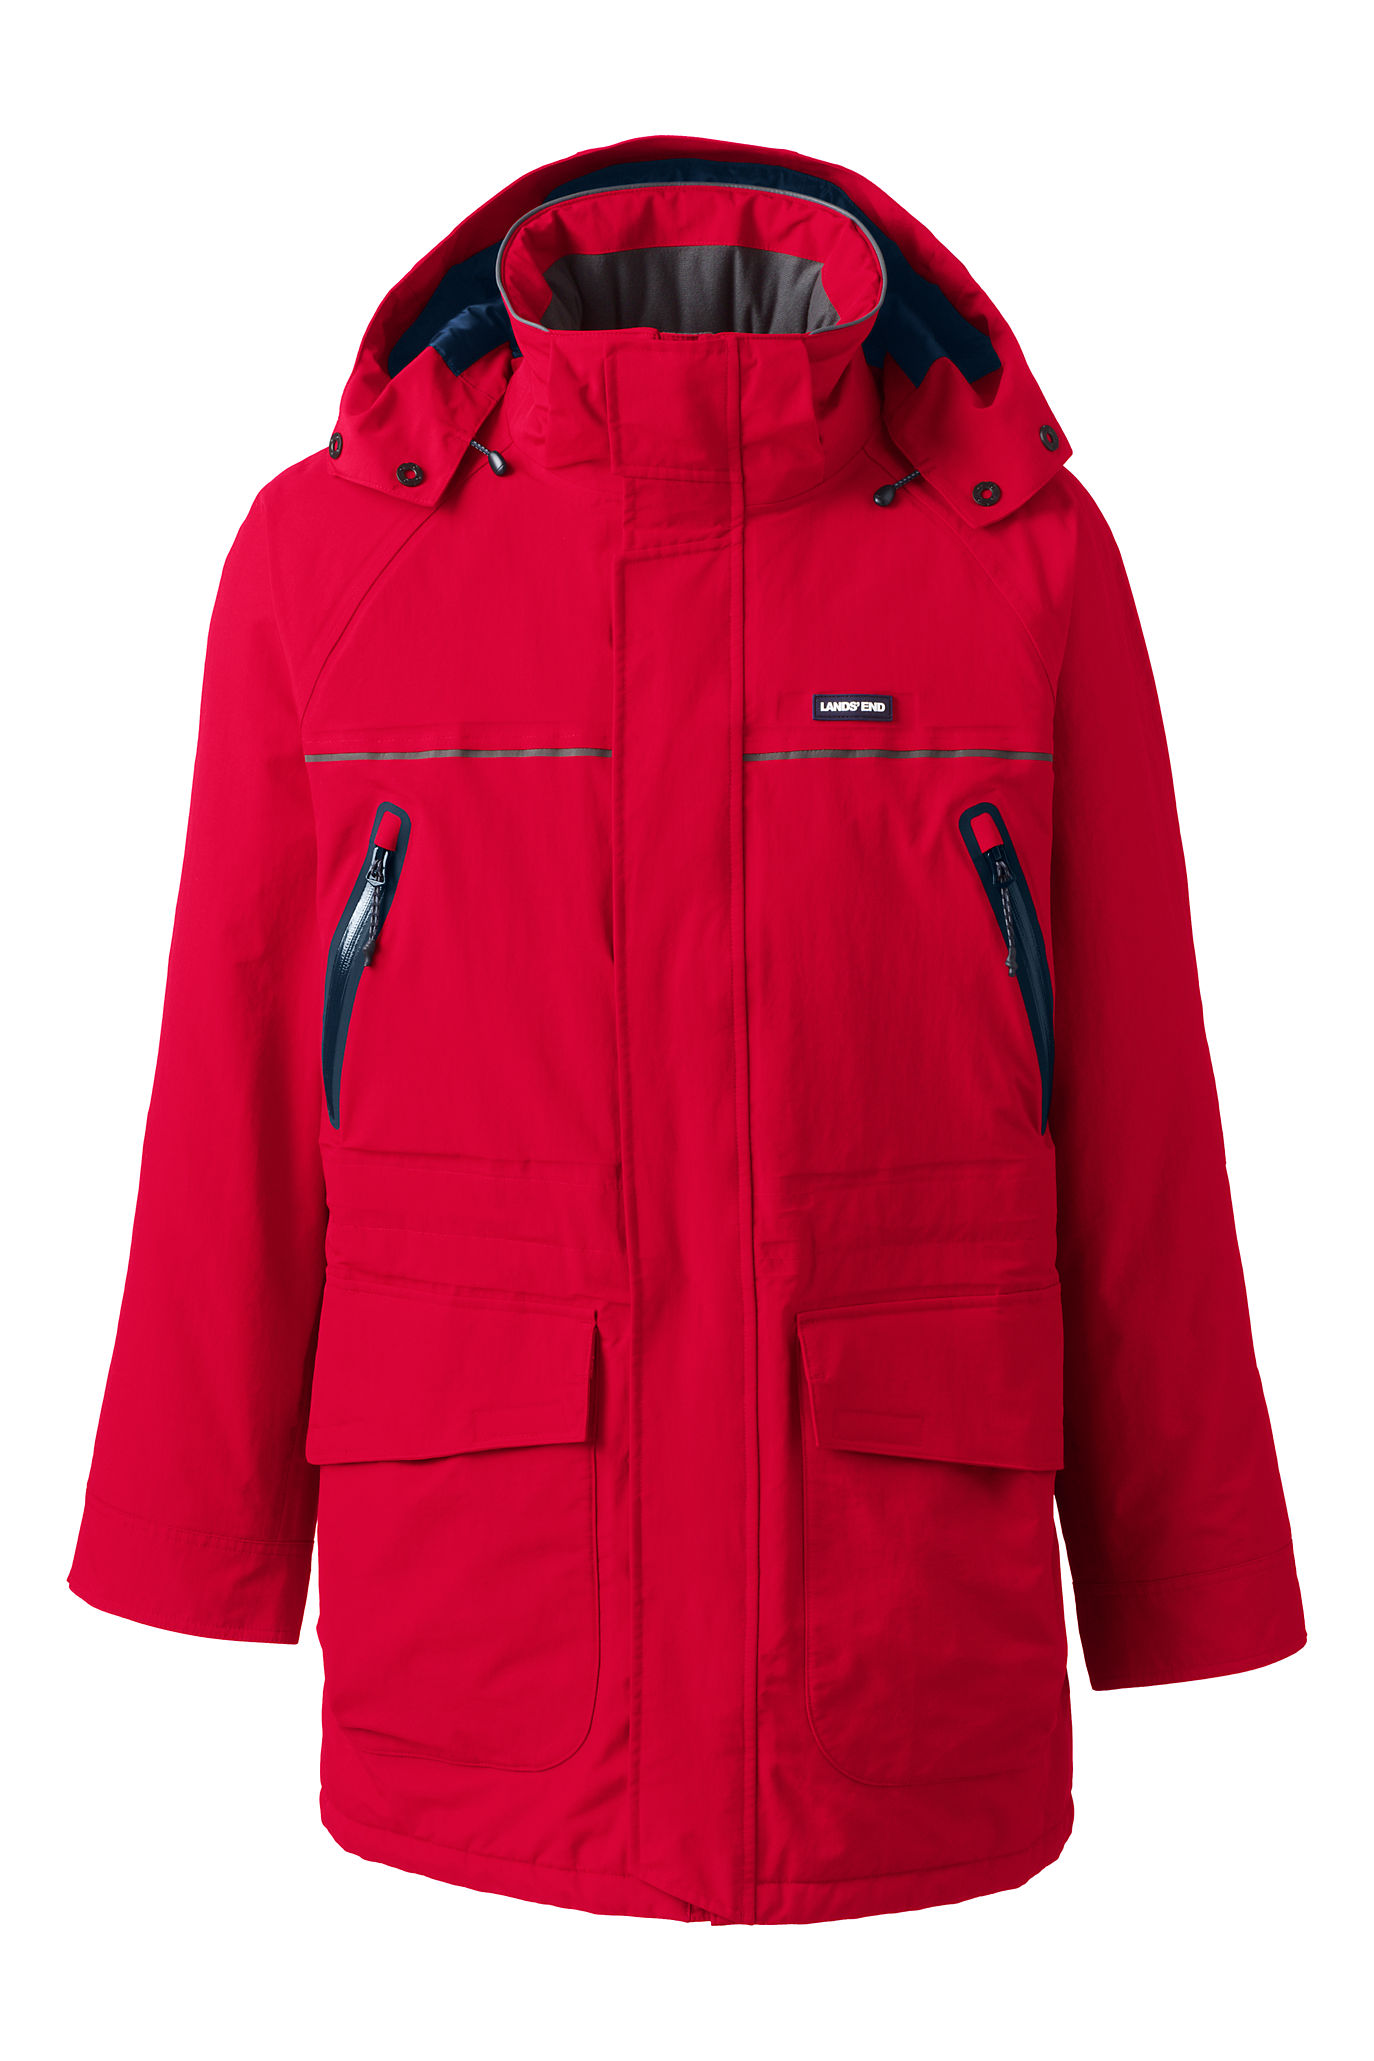 ee6b8f22d Mens Winter Coats & Warmest Jackets | Lands' End